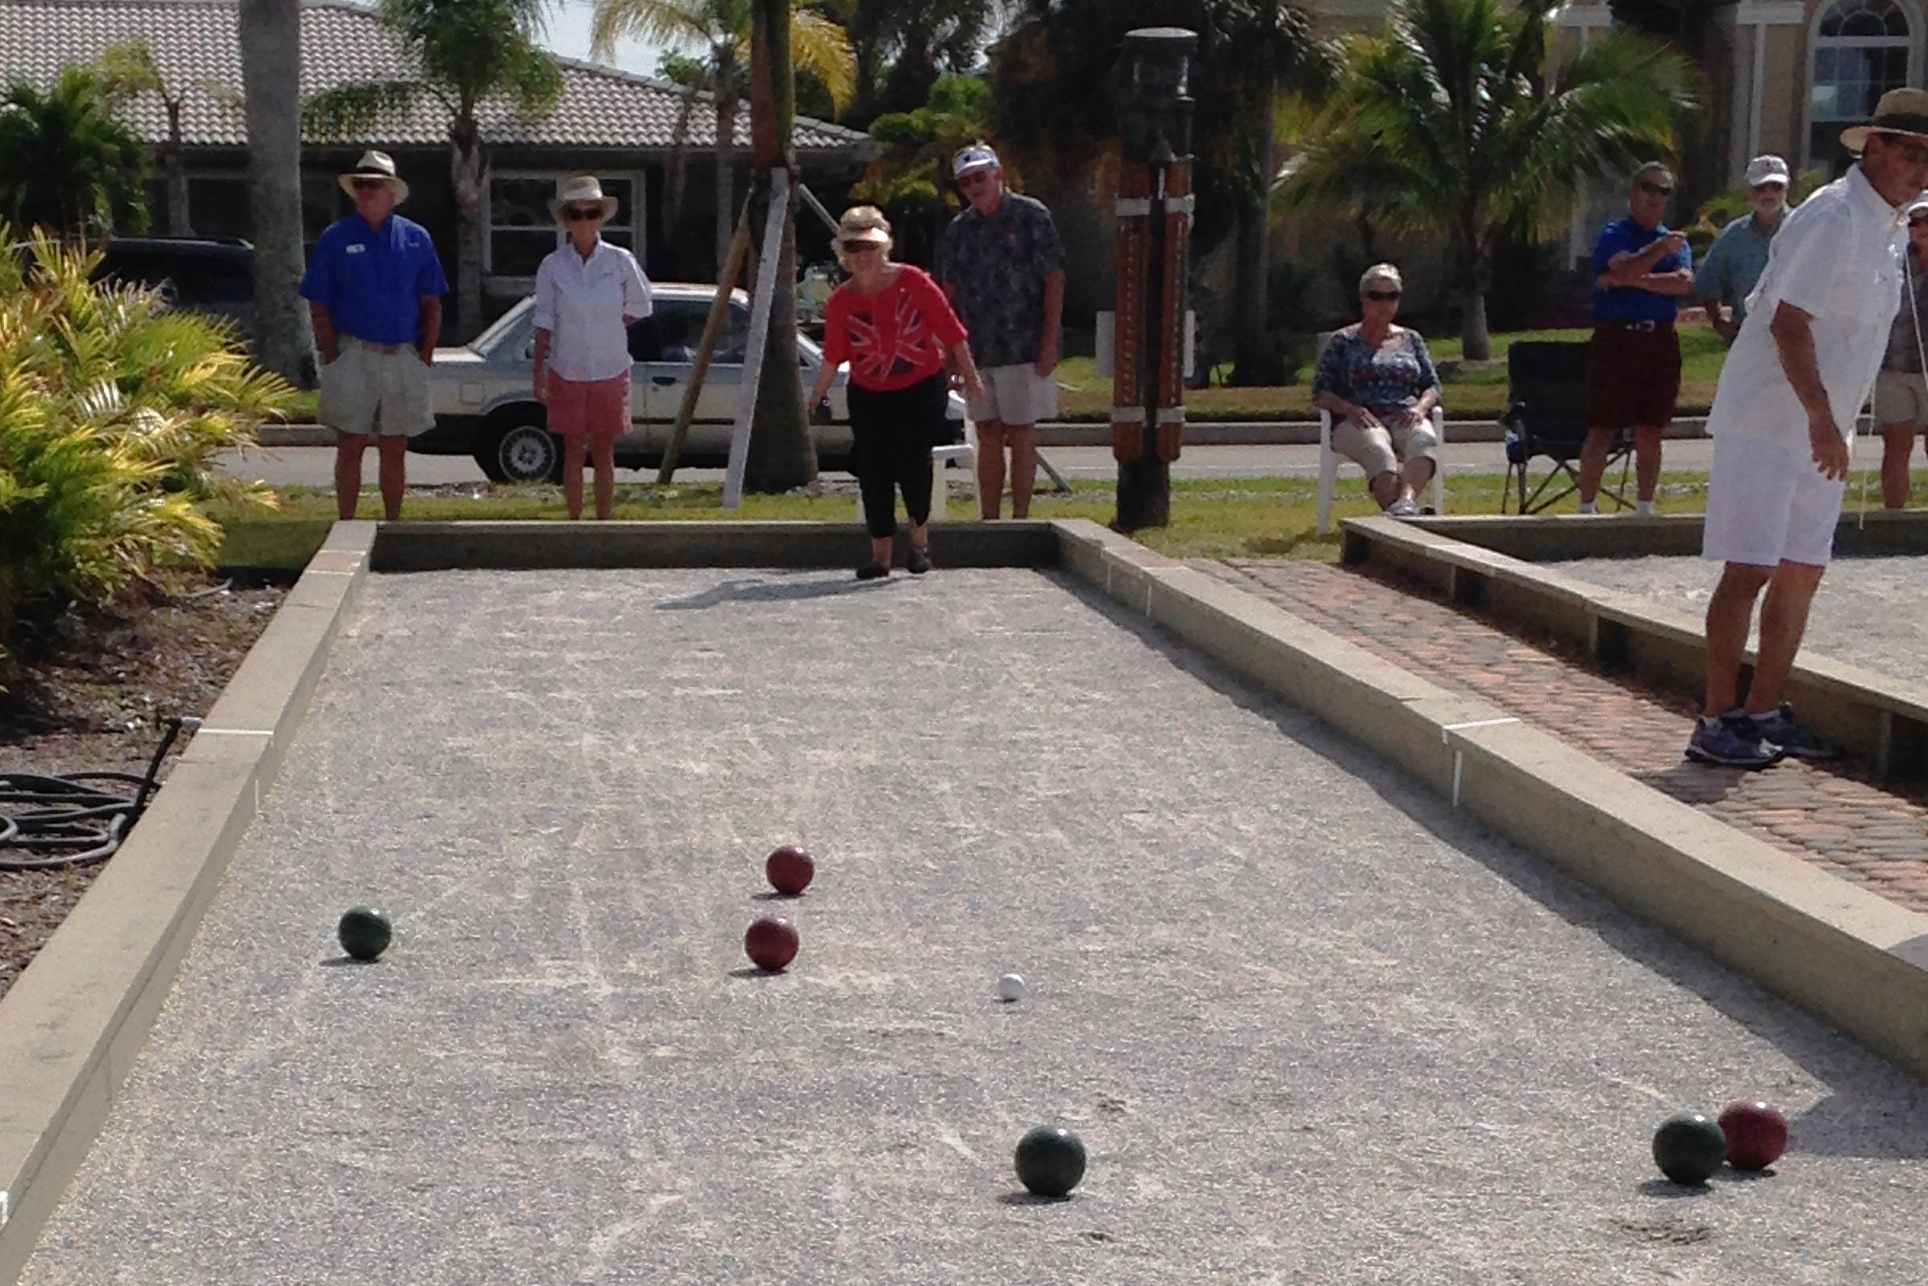 File:Bocce Tournament 11.8.14 (15779522681).jpg - Wikimedia Commons